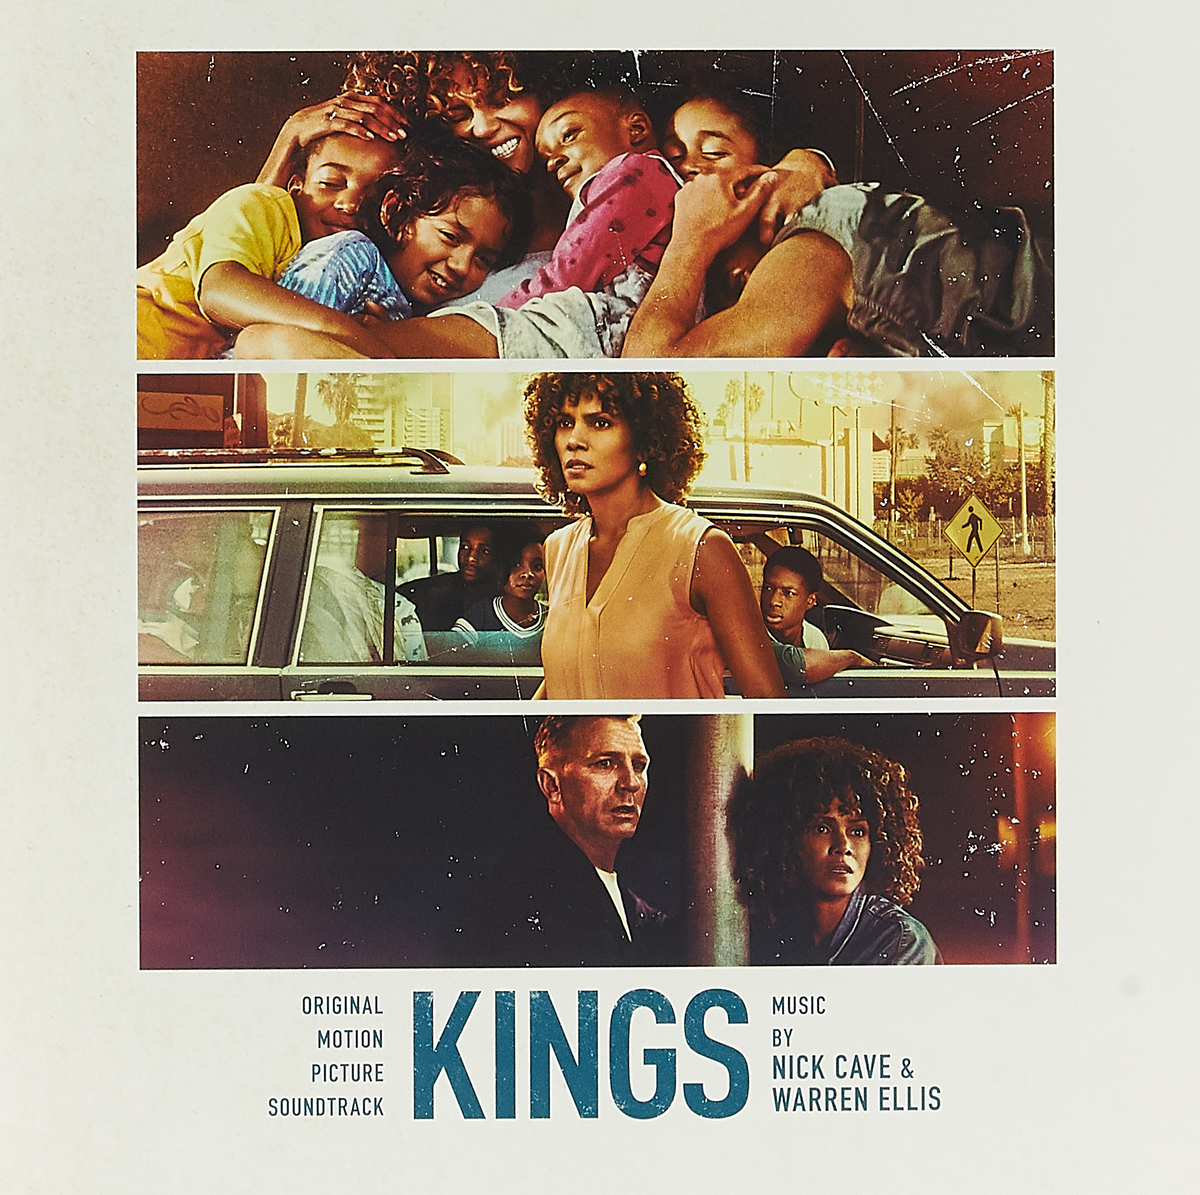 Kings. Original Motion Picture Soundtrack (LP) butch tavares adi armour the o jays brawl in cell block 99 original motion picture soundtrack lp